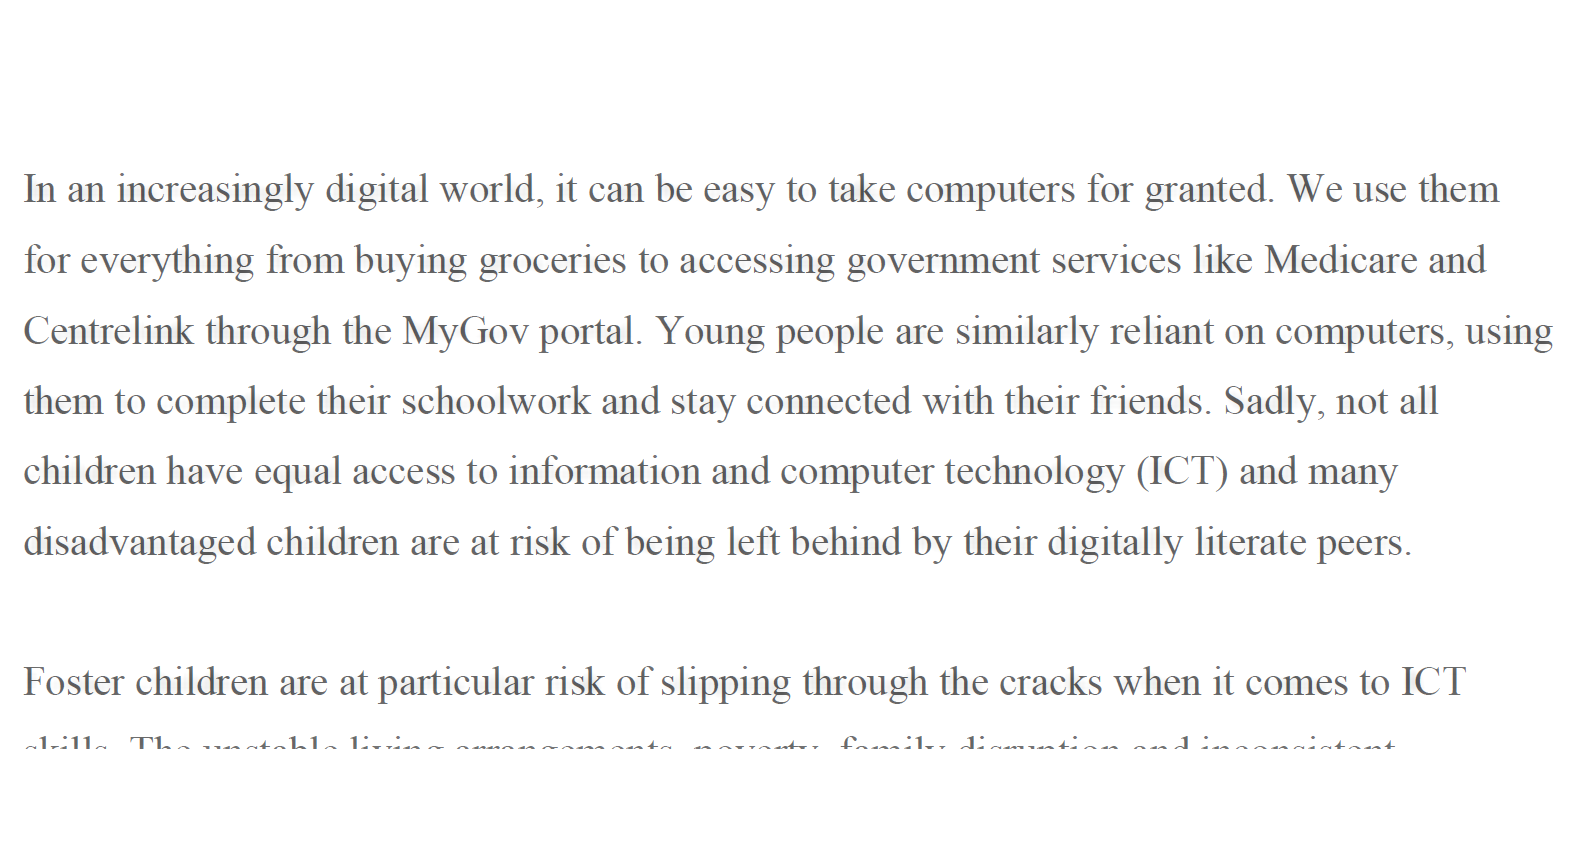 Newsletter - An article for a quarterly newsletter intended to educate foster carers about the importance of home computer access